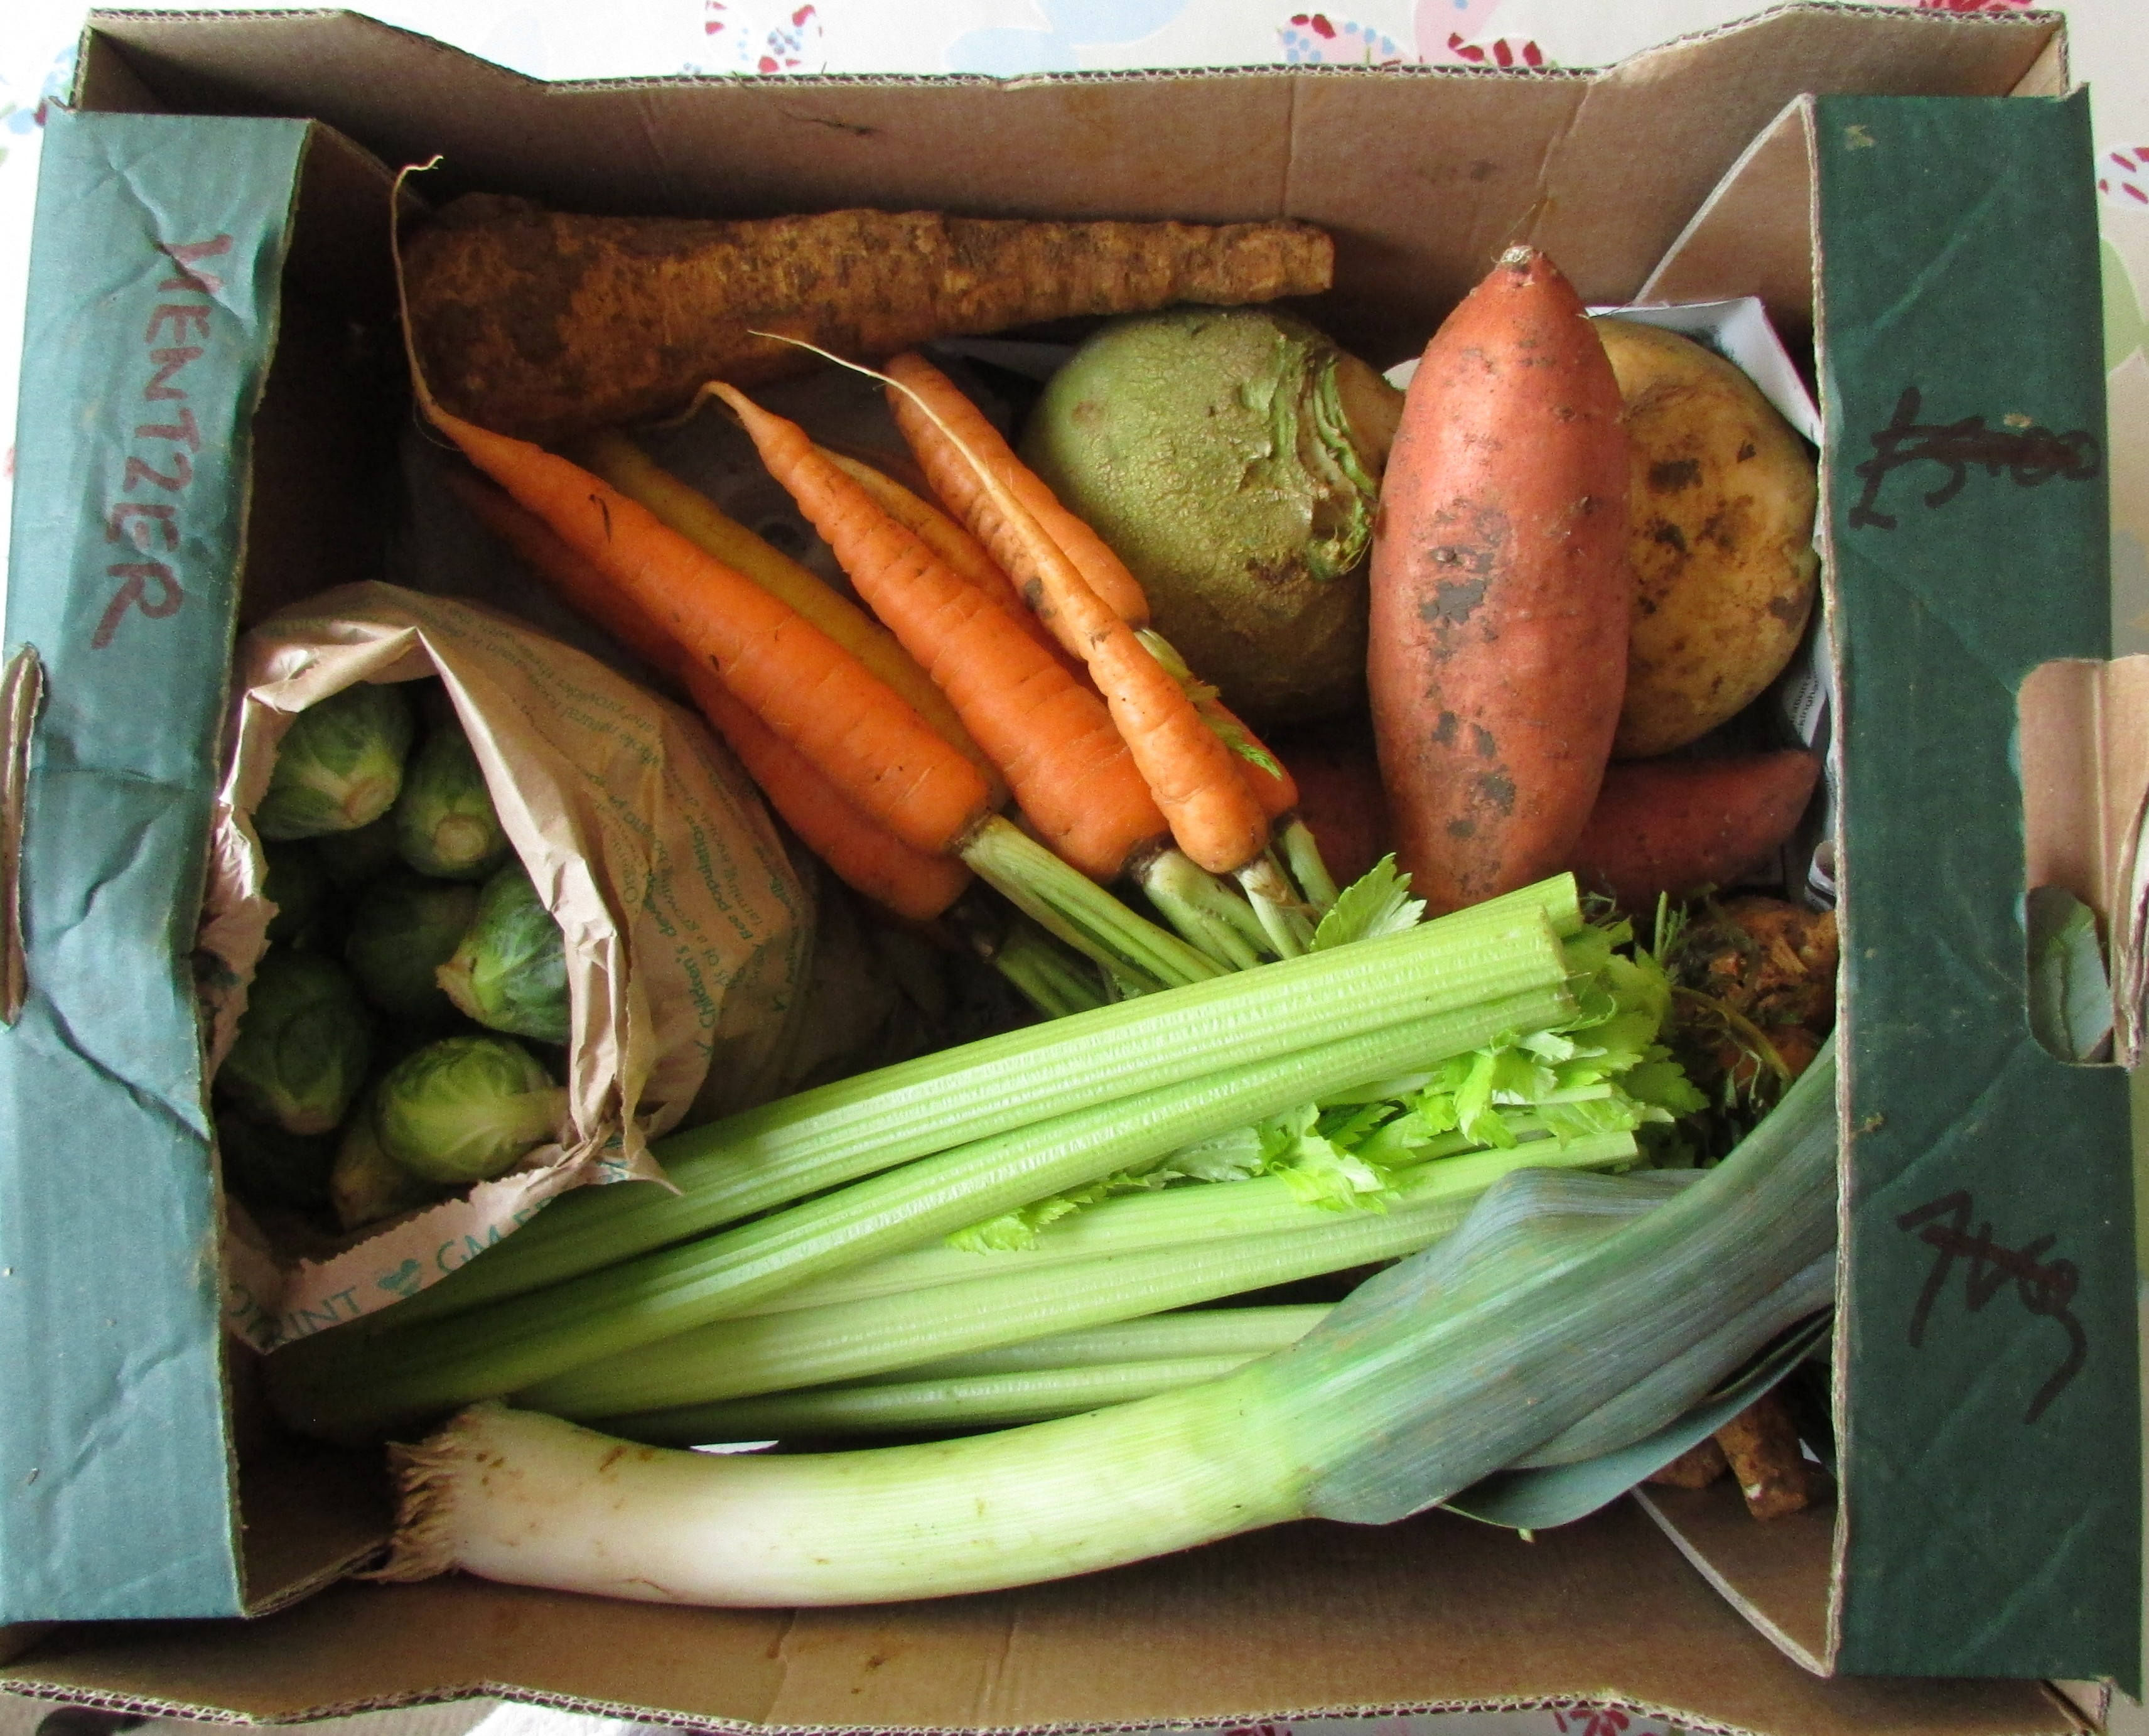 A sample veg box with sprouts, celery, carrots, sweet potato, parsnip, swede, leek and potato